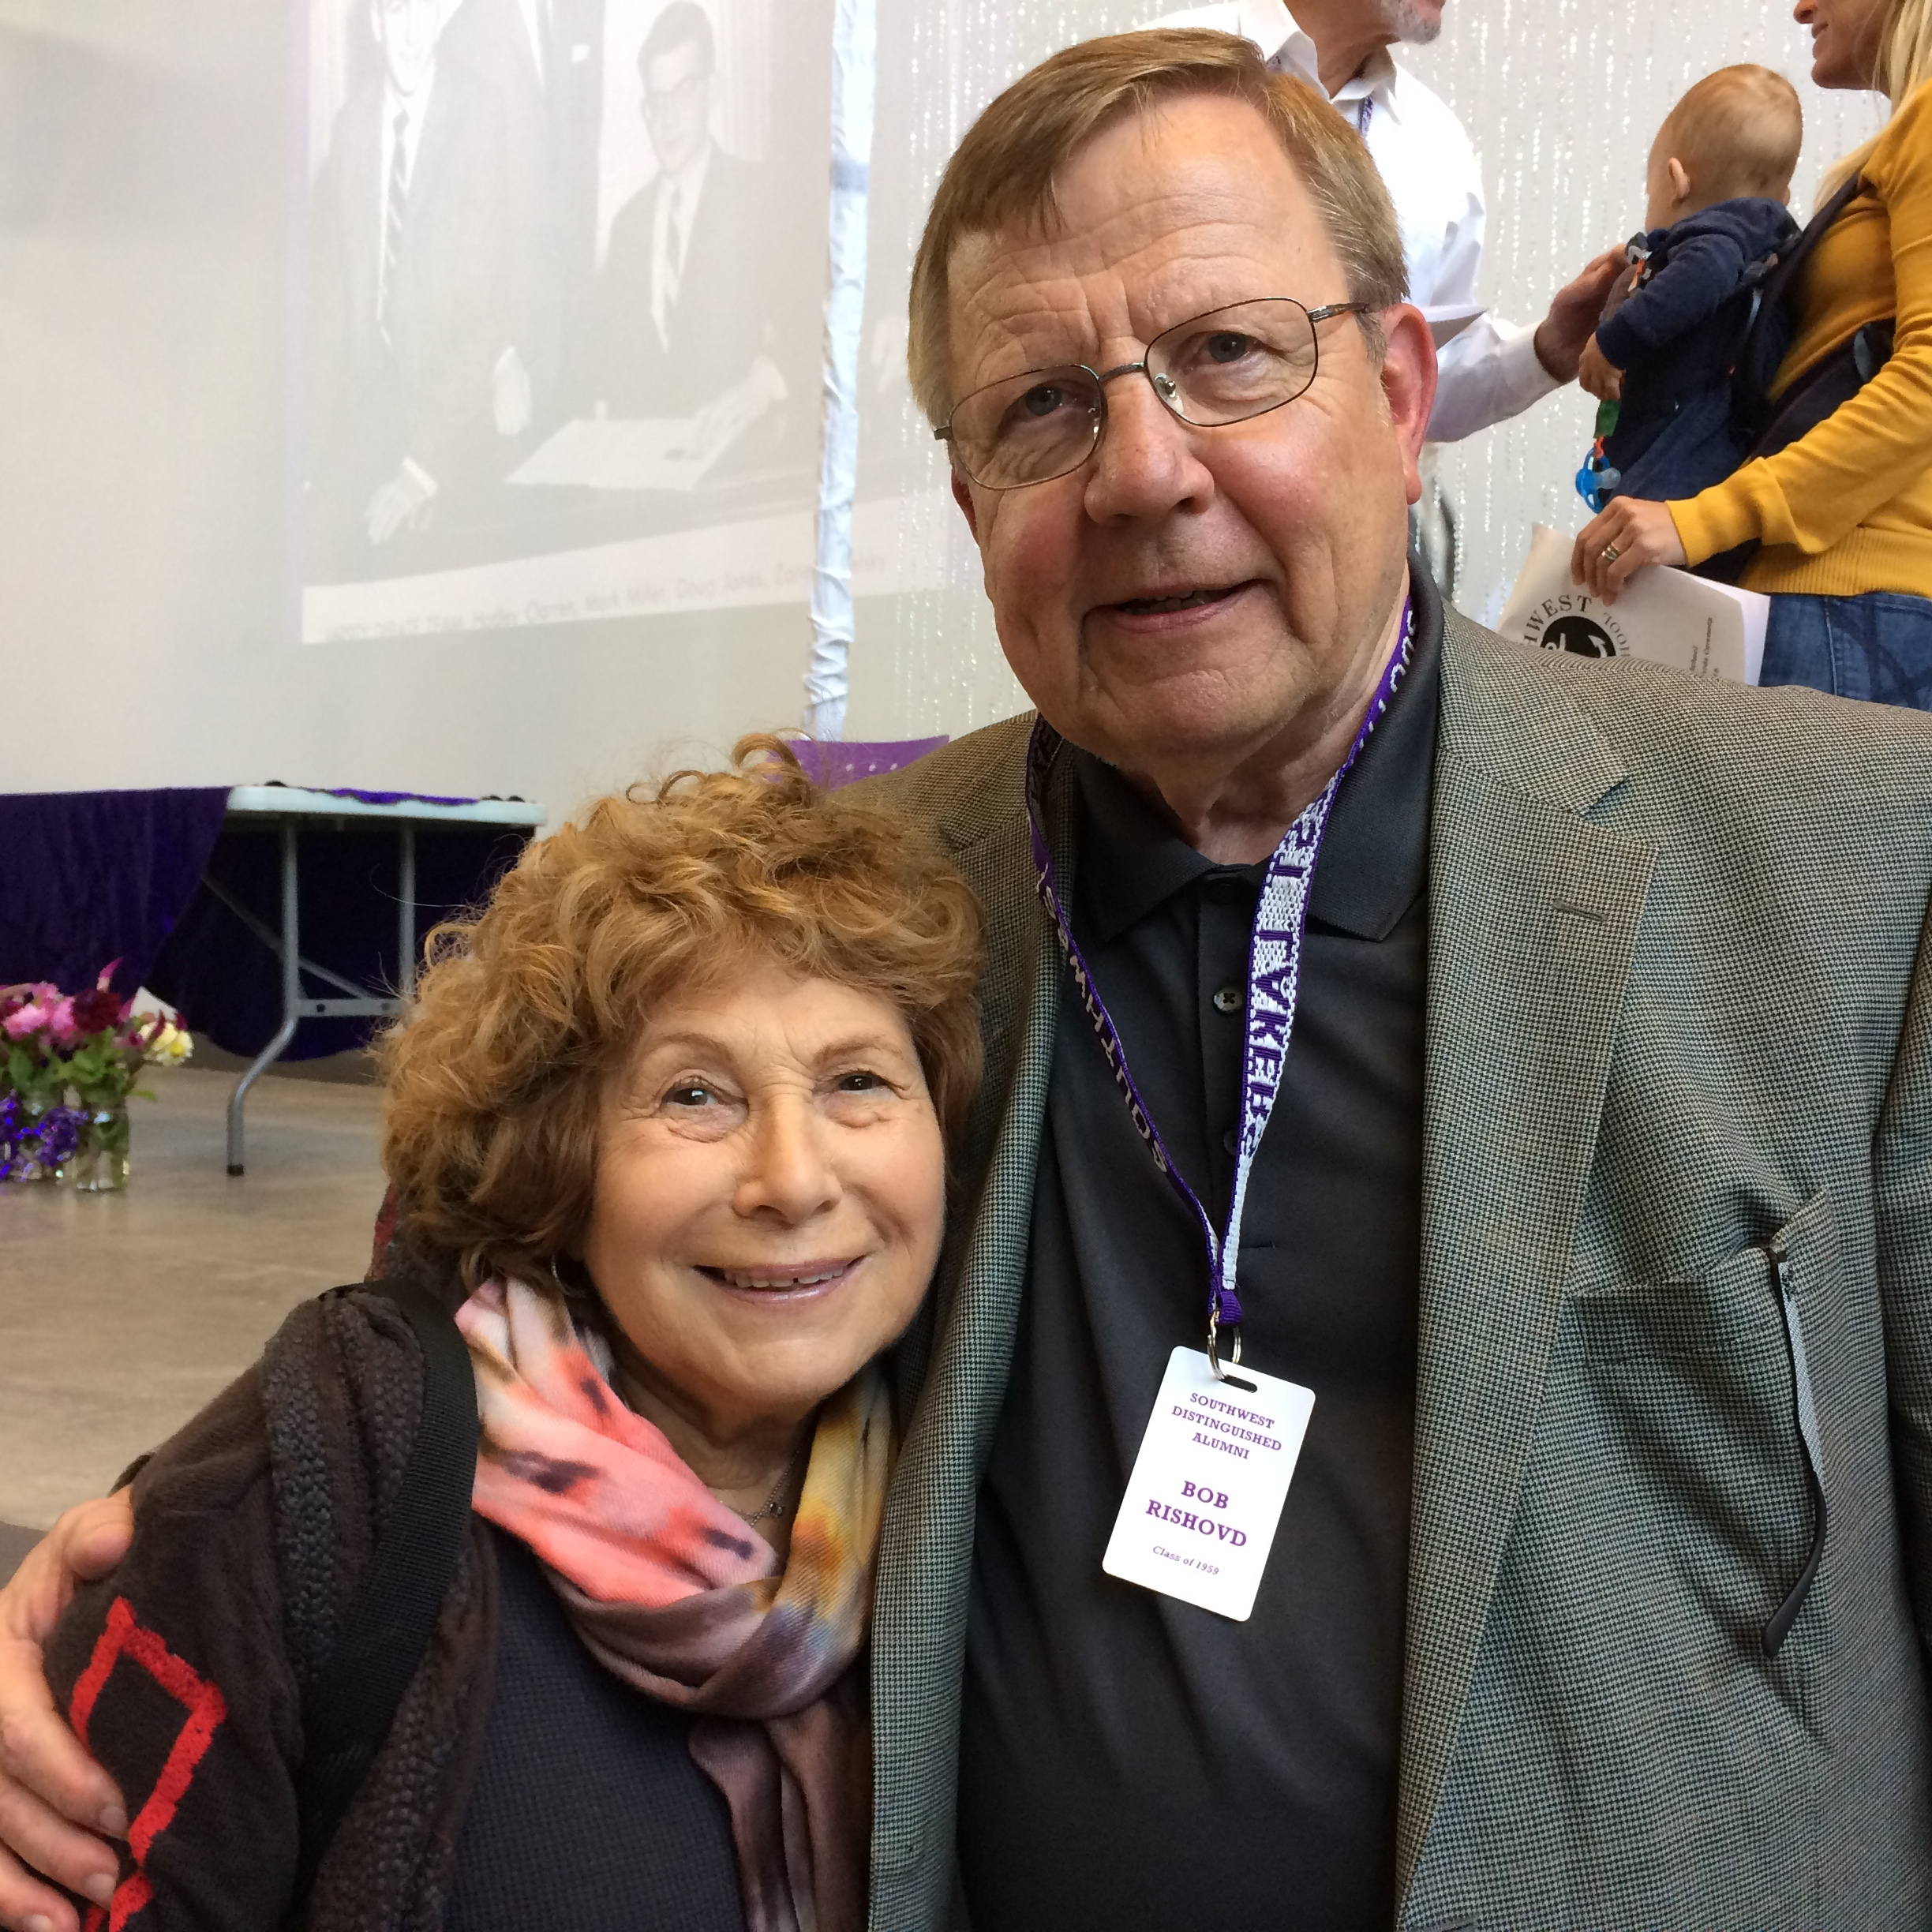 Distinguished Alumni Committee member Ruth Usem '57 with Distinguished Alumni Bob Rishovd '59 at the Awards Ceremony on October 8, 2016